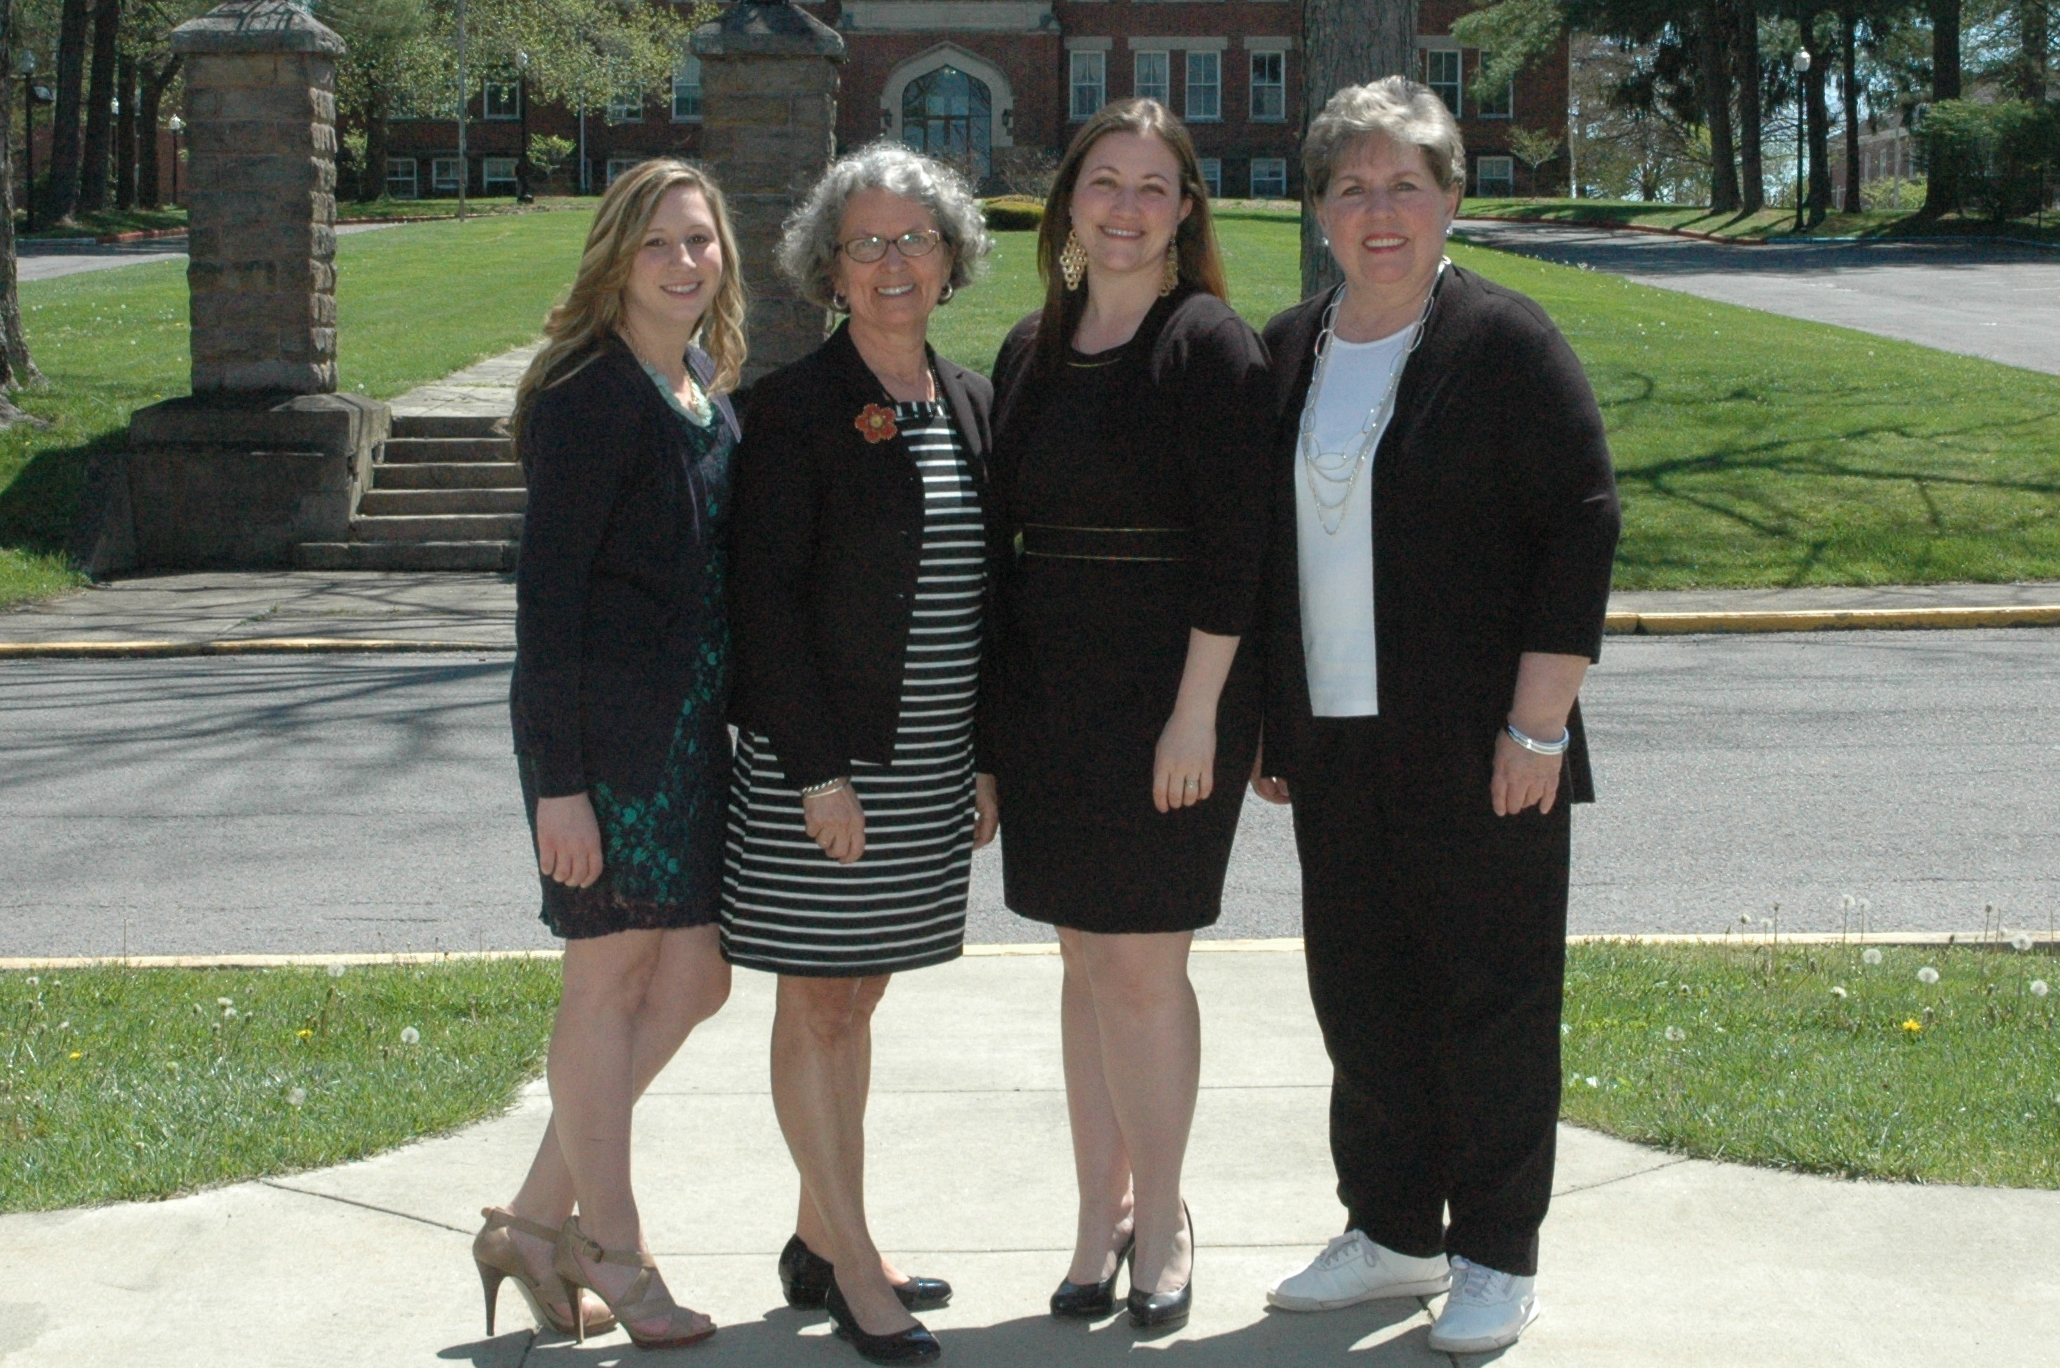 CCE Staff from L-R: Jessica Vincent, LeeAnn Brown, Katie Loudin, Linda Hicks